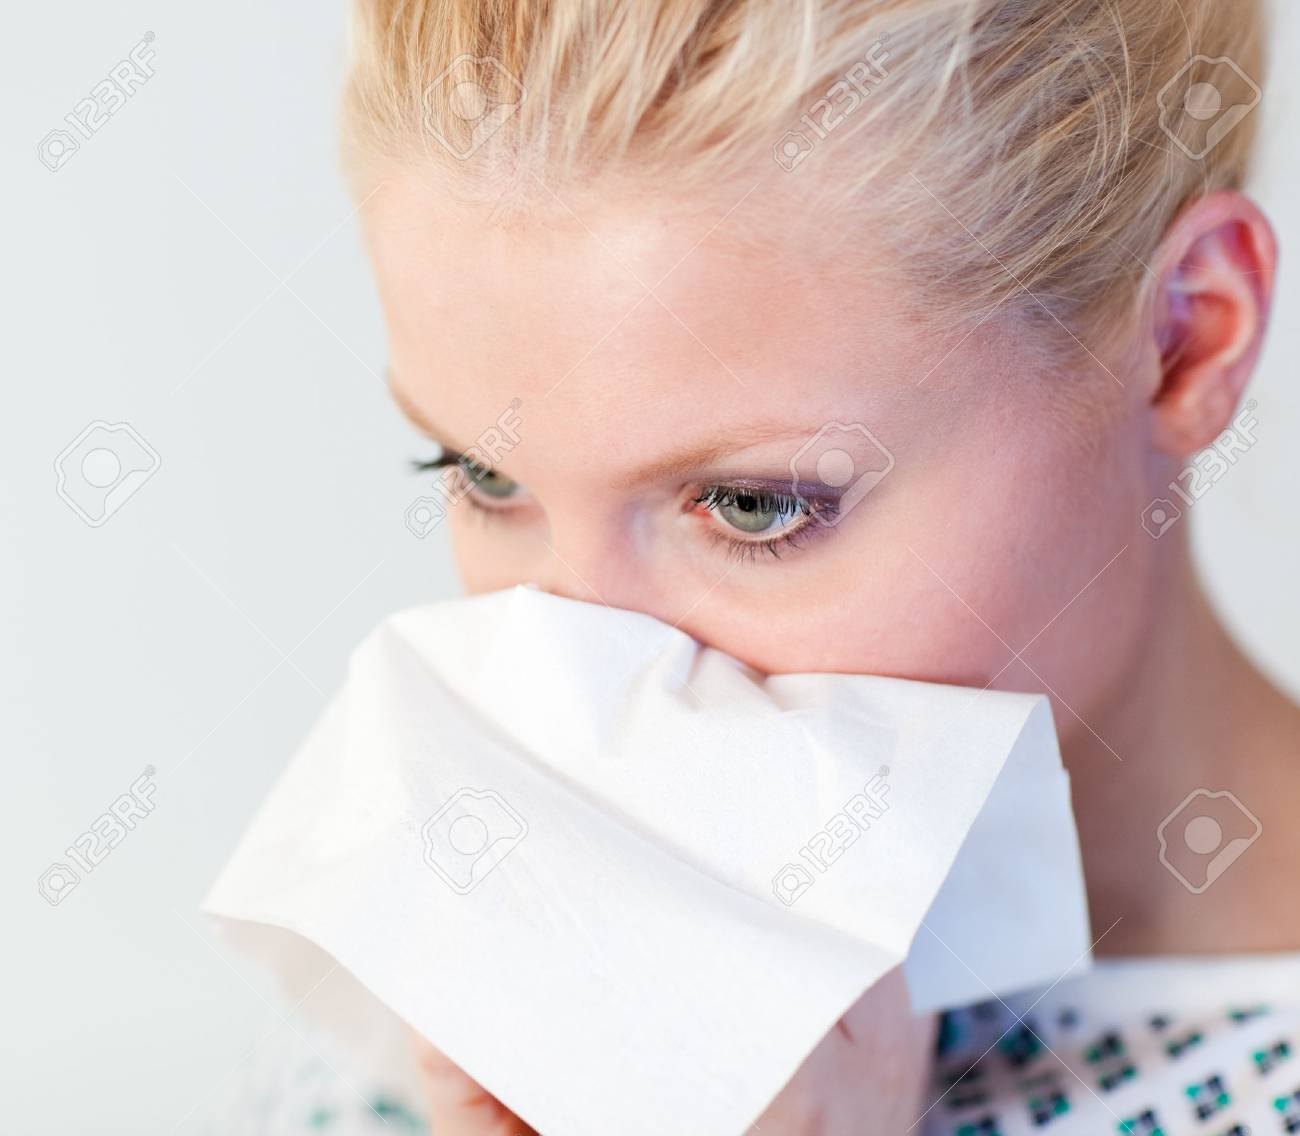 Patient with the flu Stock Photo - 10110457